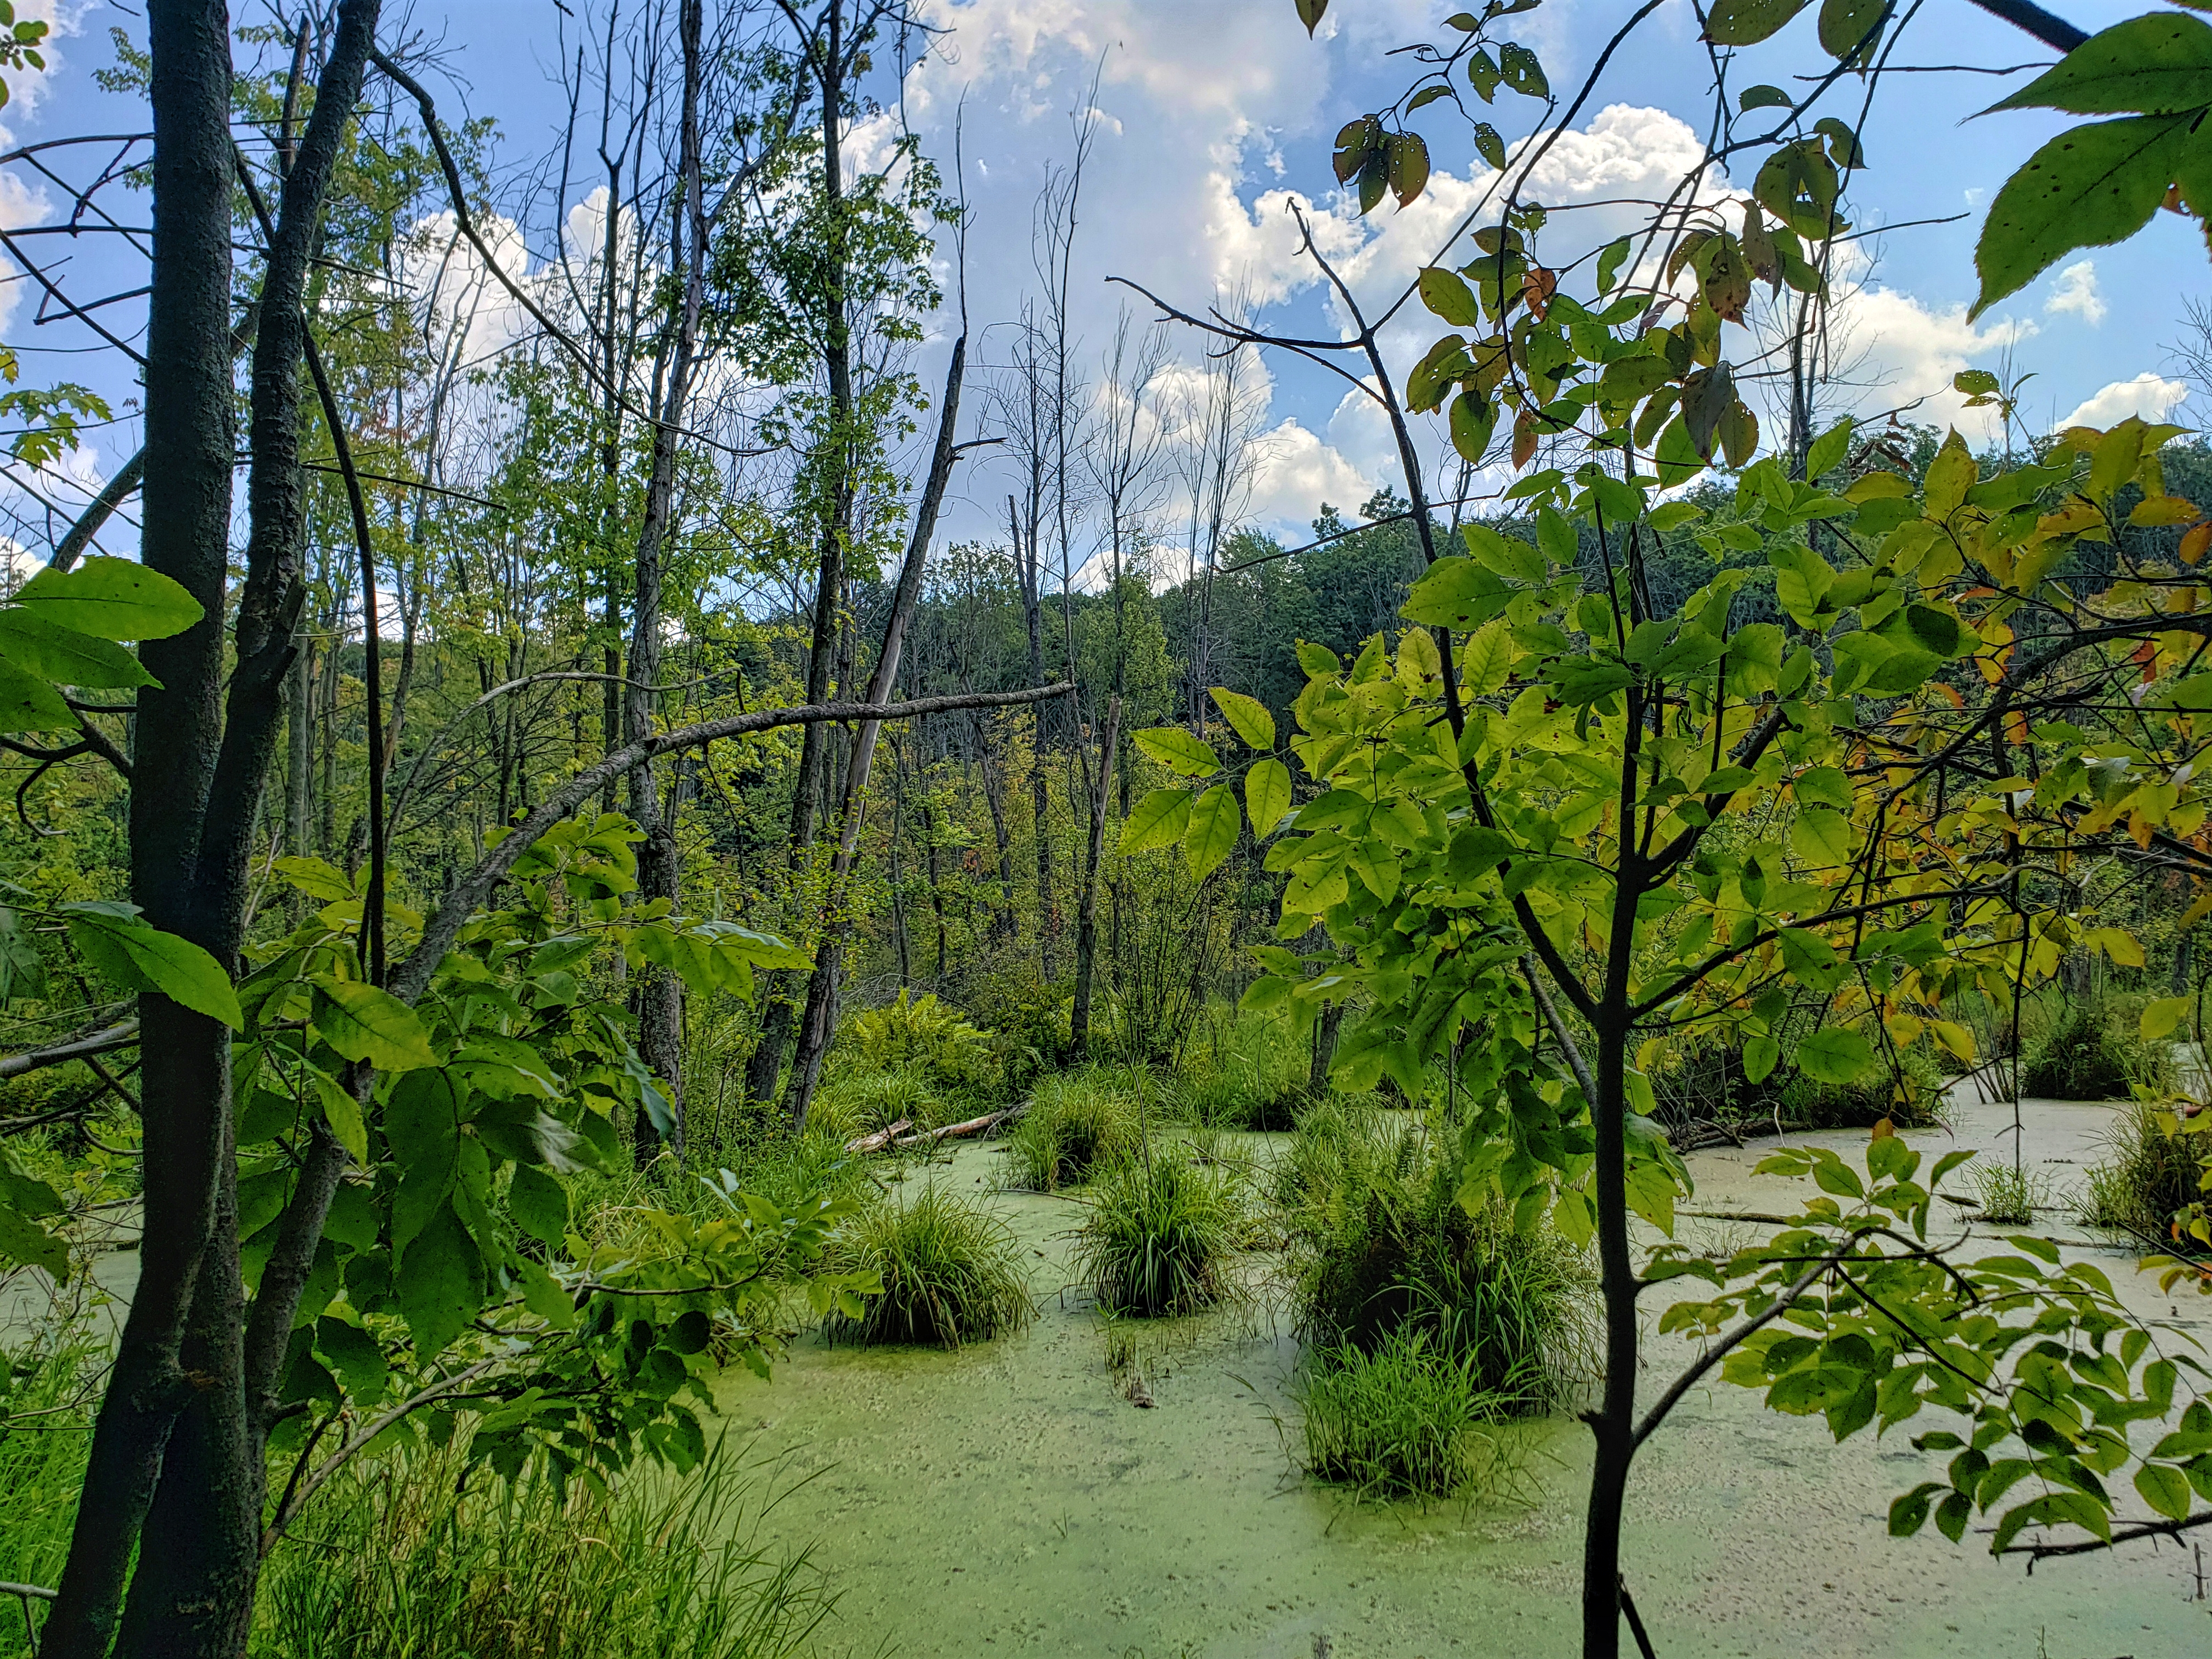 swampy marshland at the West Bloom Field Nature Trail